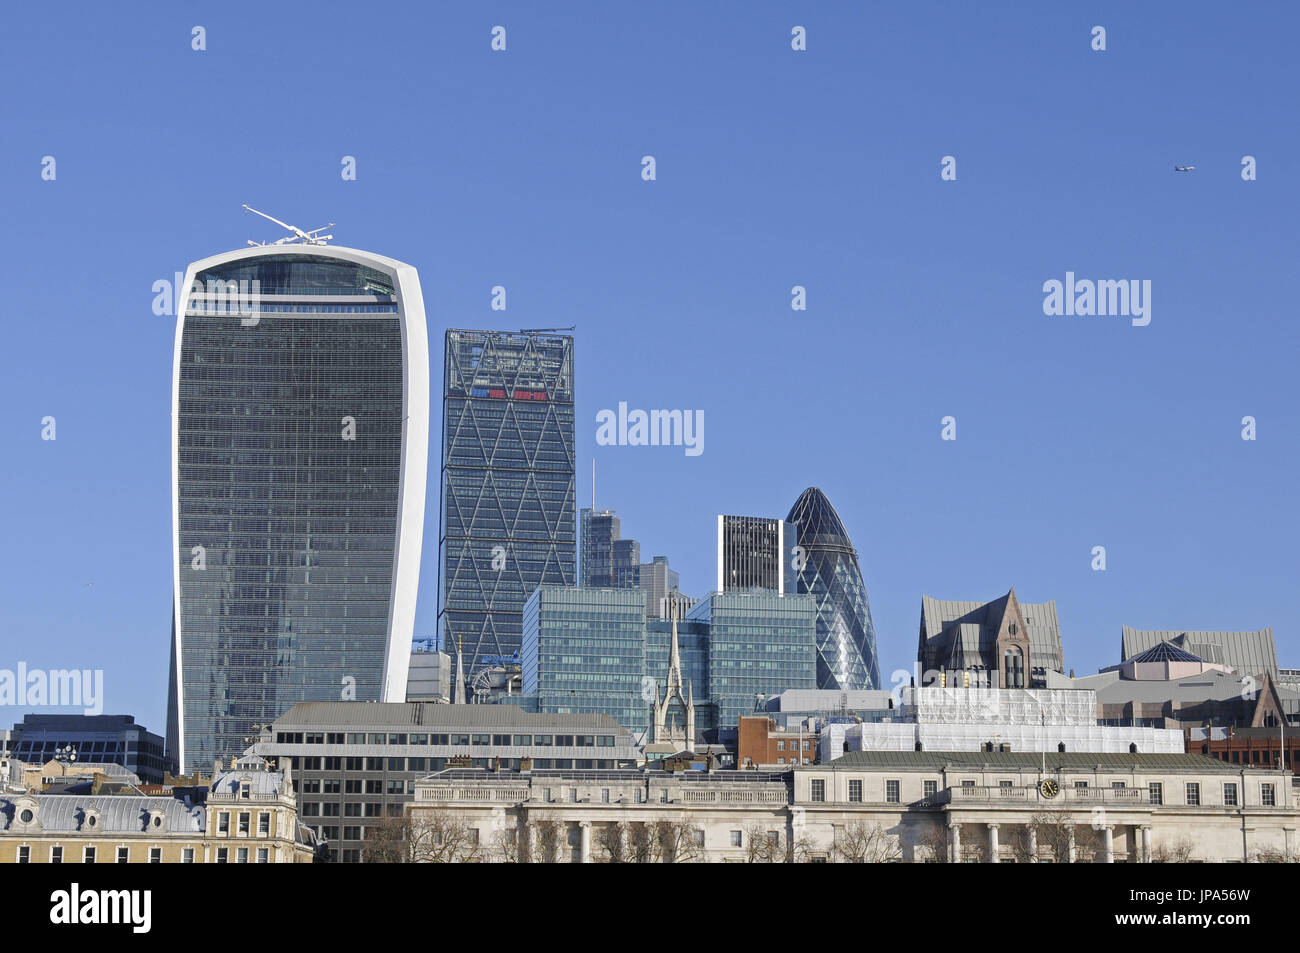 The view to the Modern Skyline of City of London with the Walkie Talkie, The Gherkin and Cheesegrater Buildings London England - Stock Image